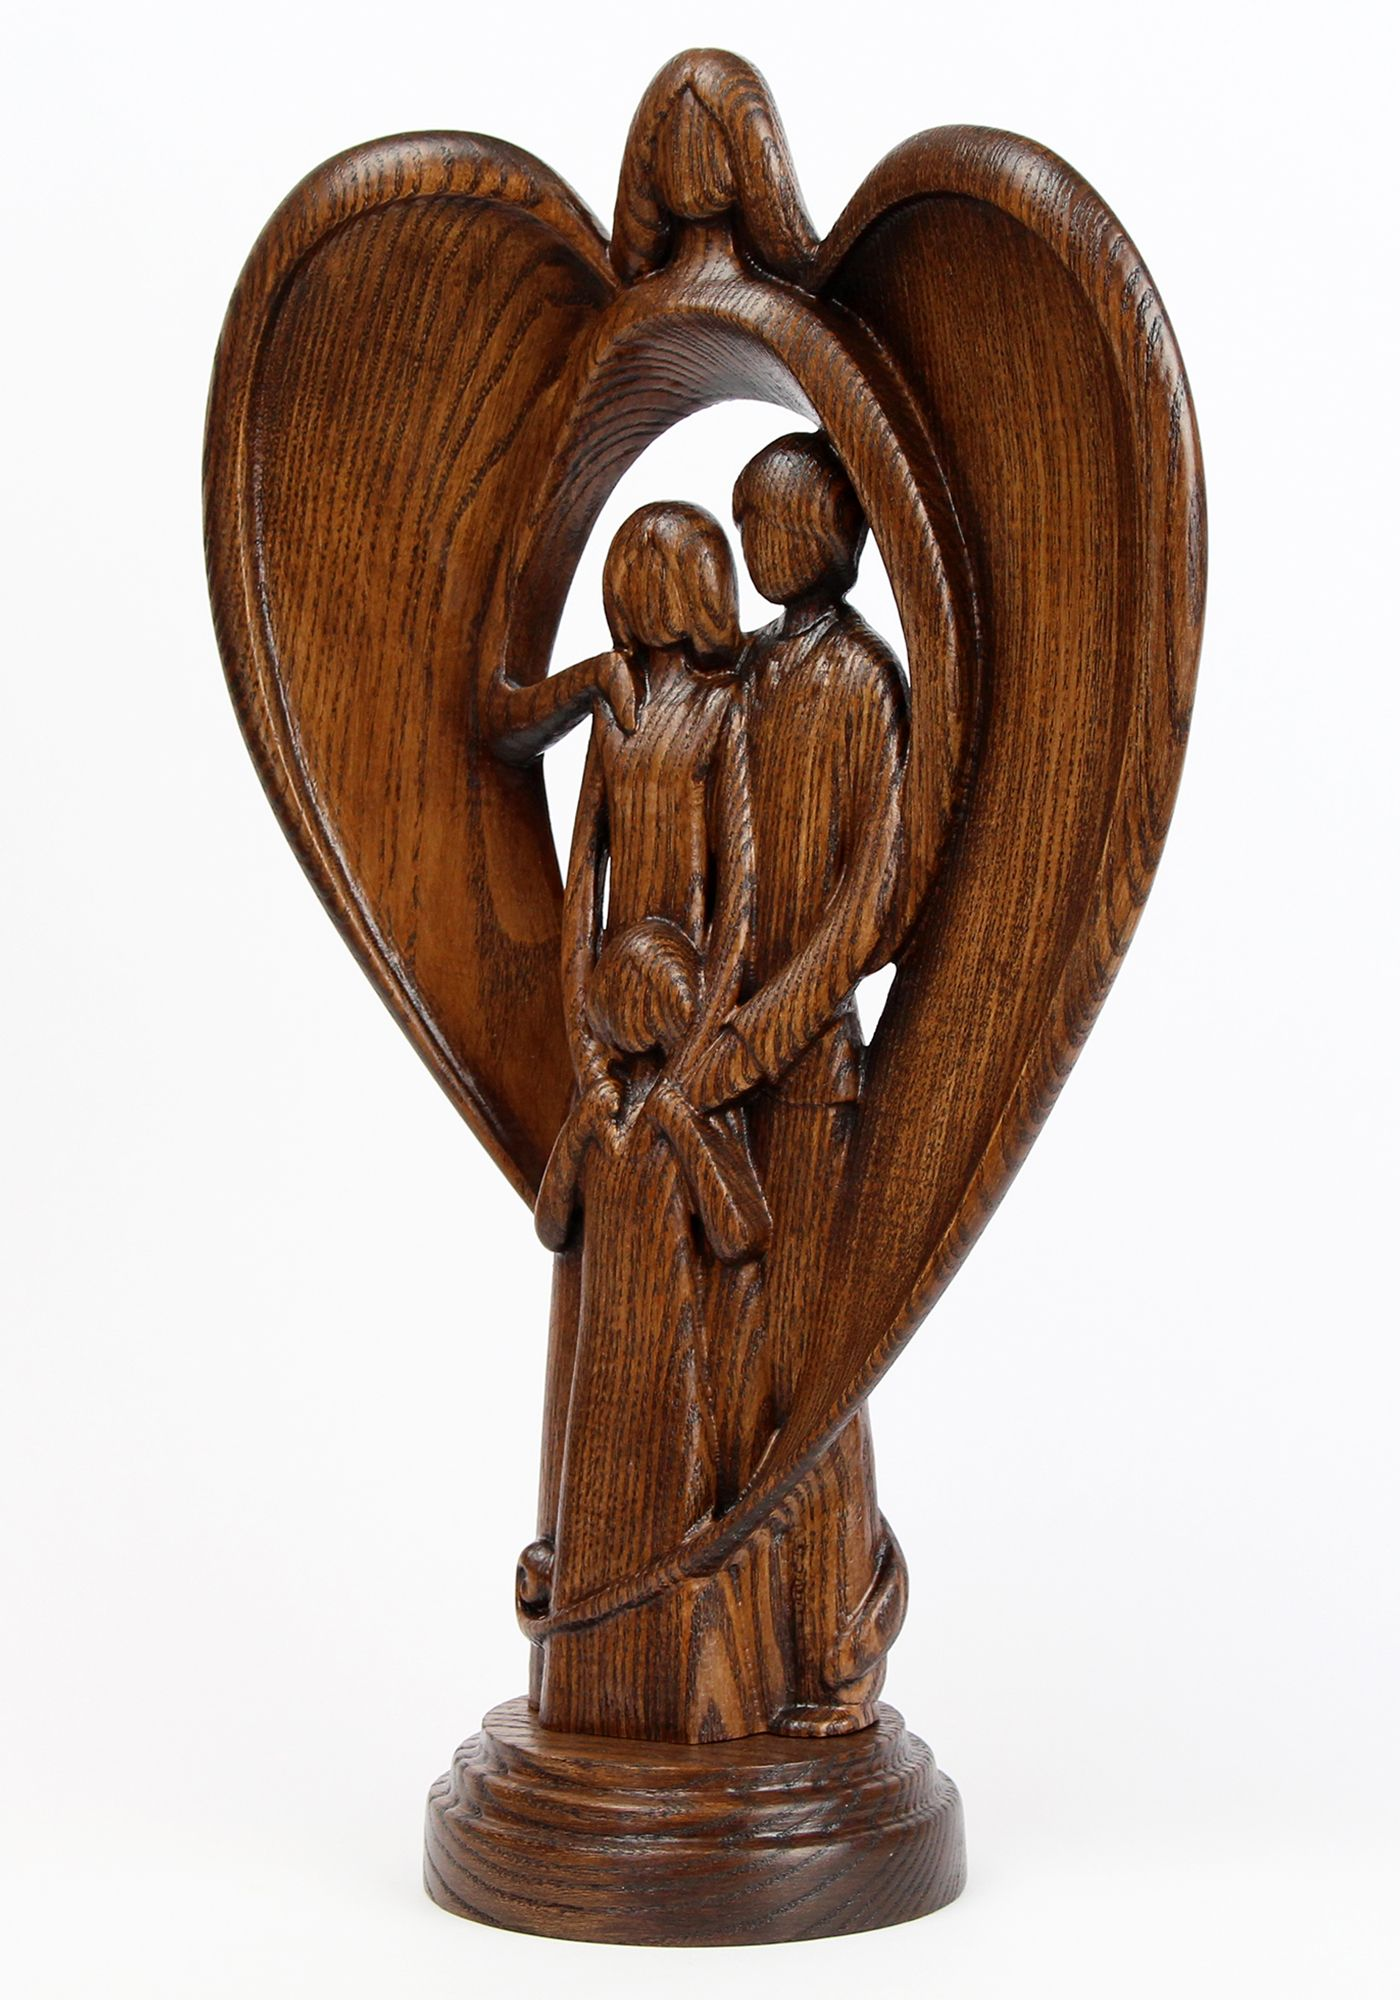 Wooden Angel Sculpture Guardian Angel Statue Hand Carved Wood